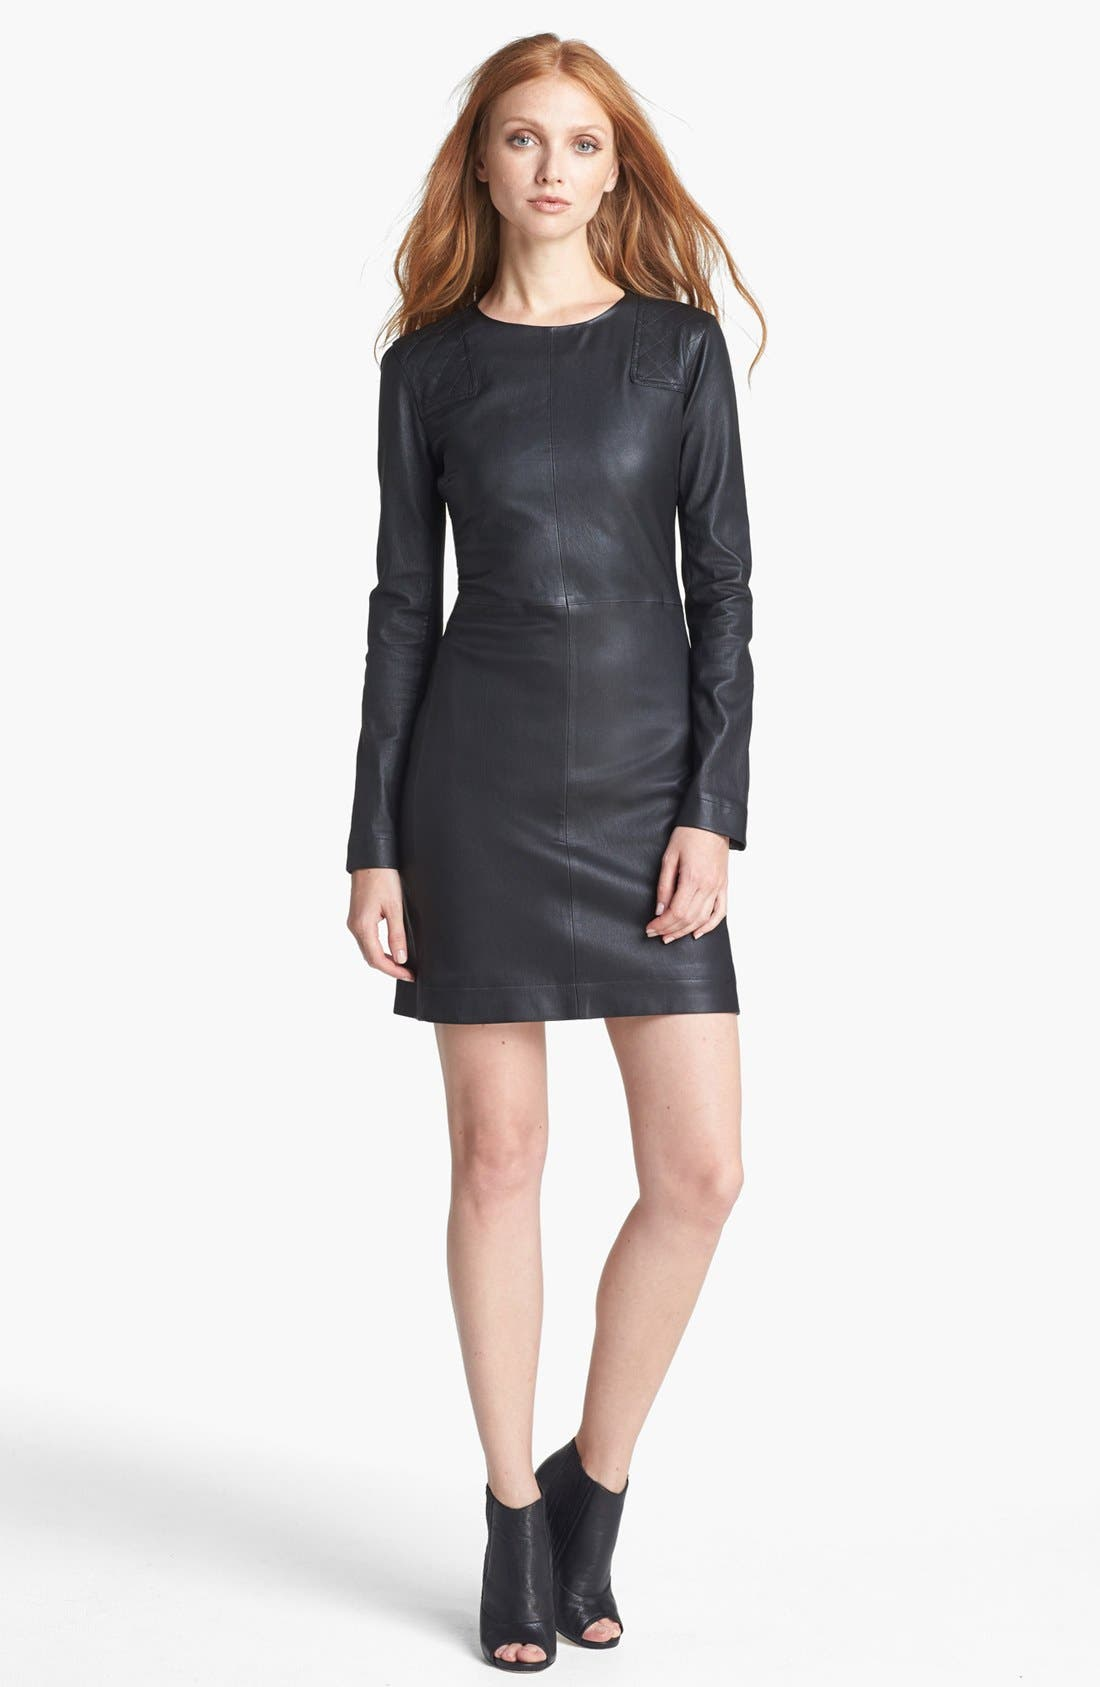 Alternate Image 1 Selected - MARC BY MARC JACOBS 'Lena' Leather Sheath Dress